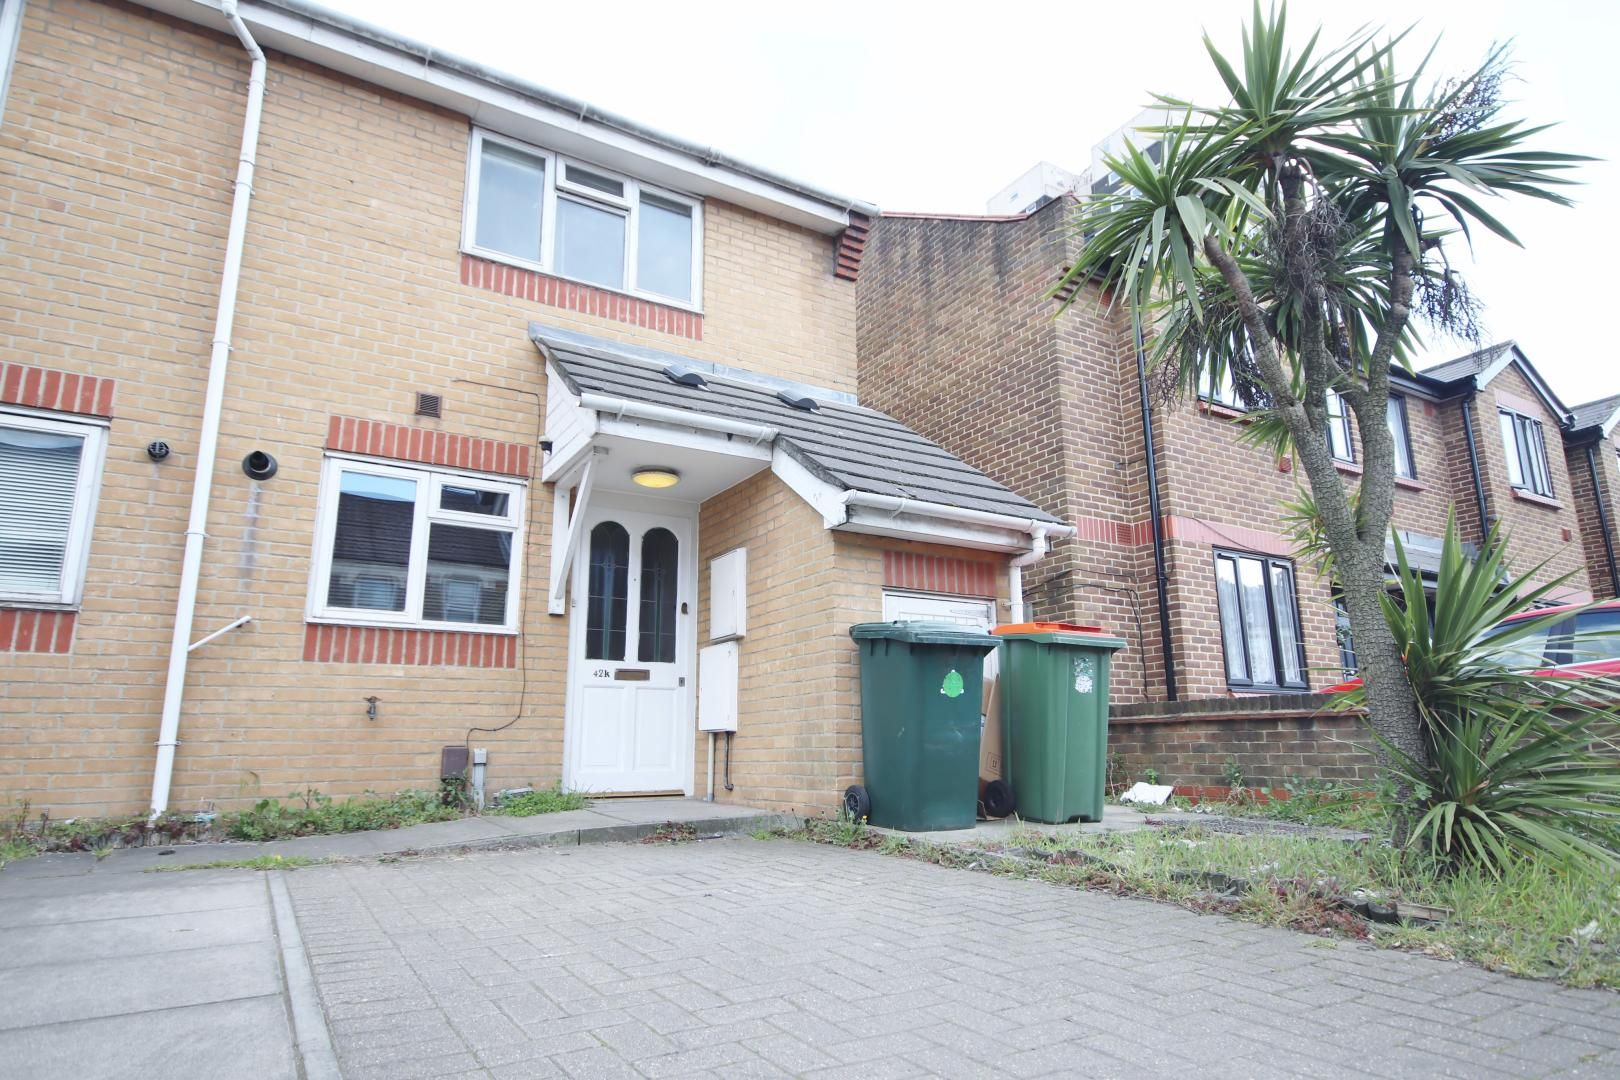 2 bed house to rent in Fernhill Street, E16